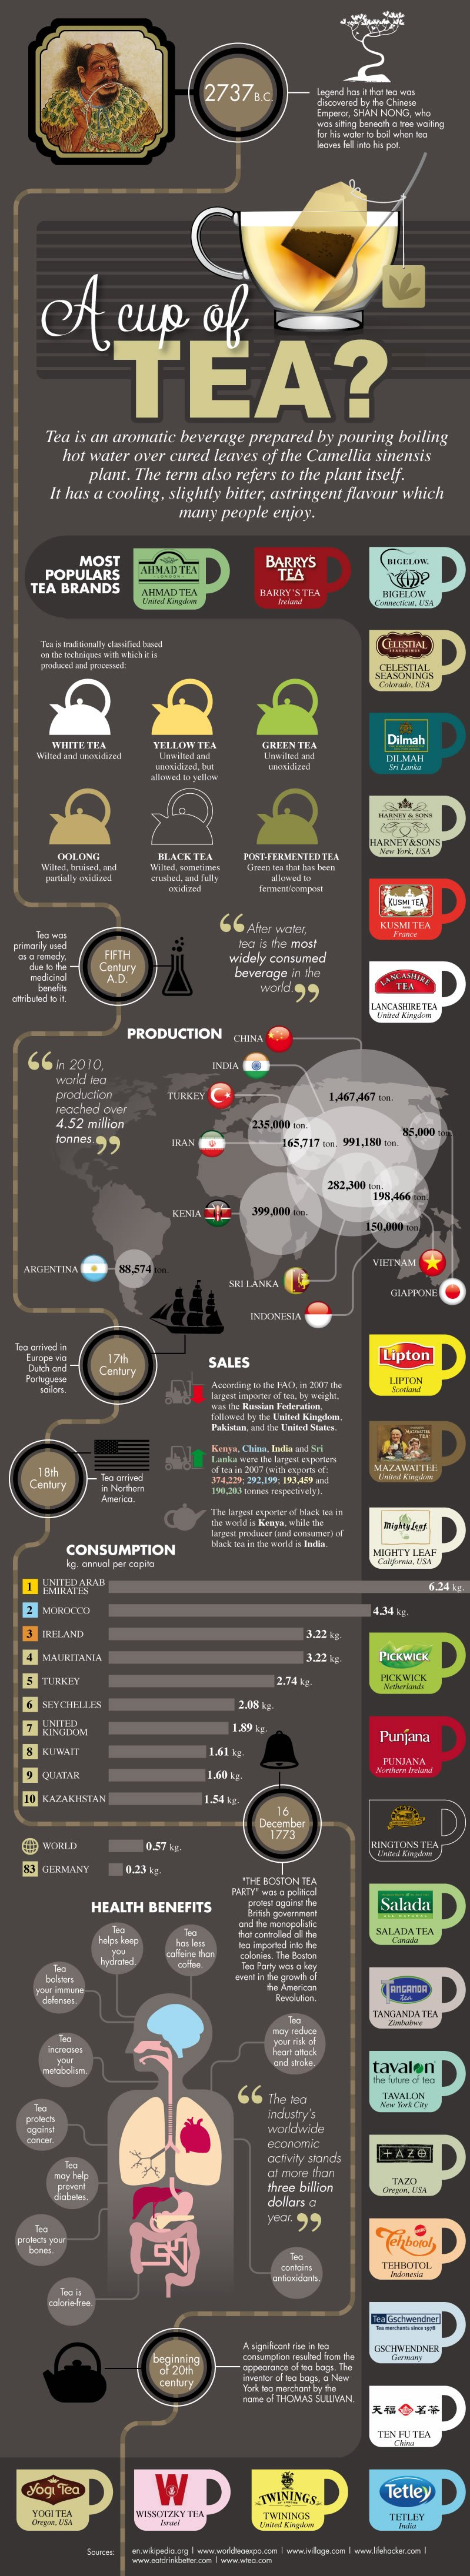 A Cup of Tea Infographic A Cup of Tea? All About Tea (Infographic)